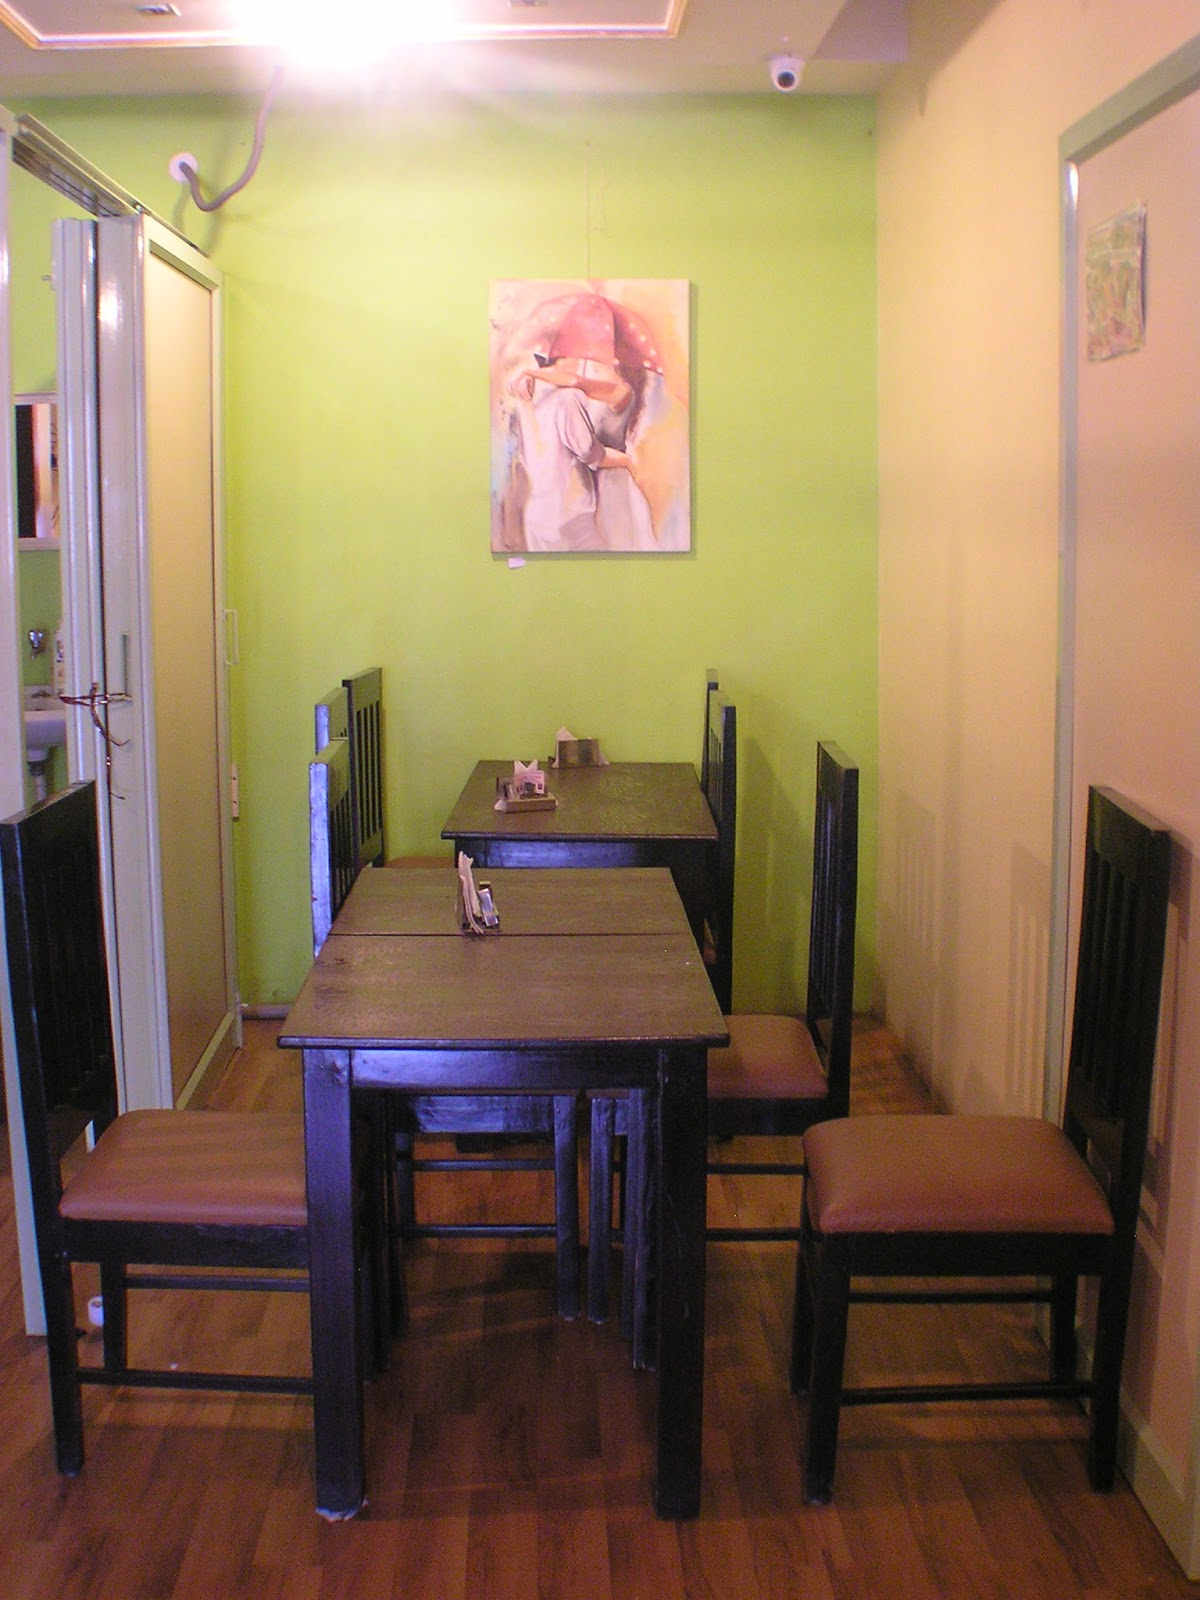 Cafe Ambroisie - True French Cafe Experience: Solo Art Exhibition by ...